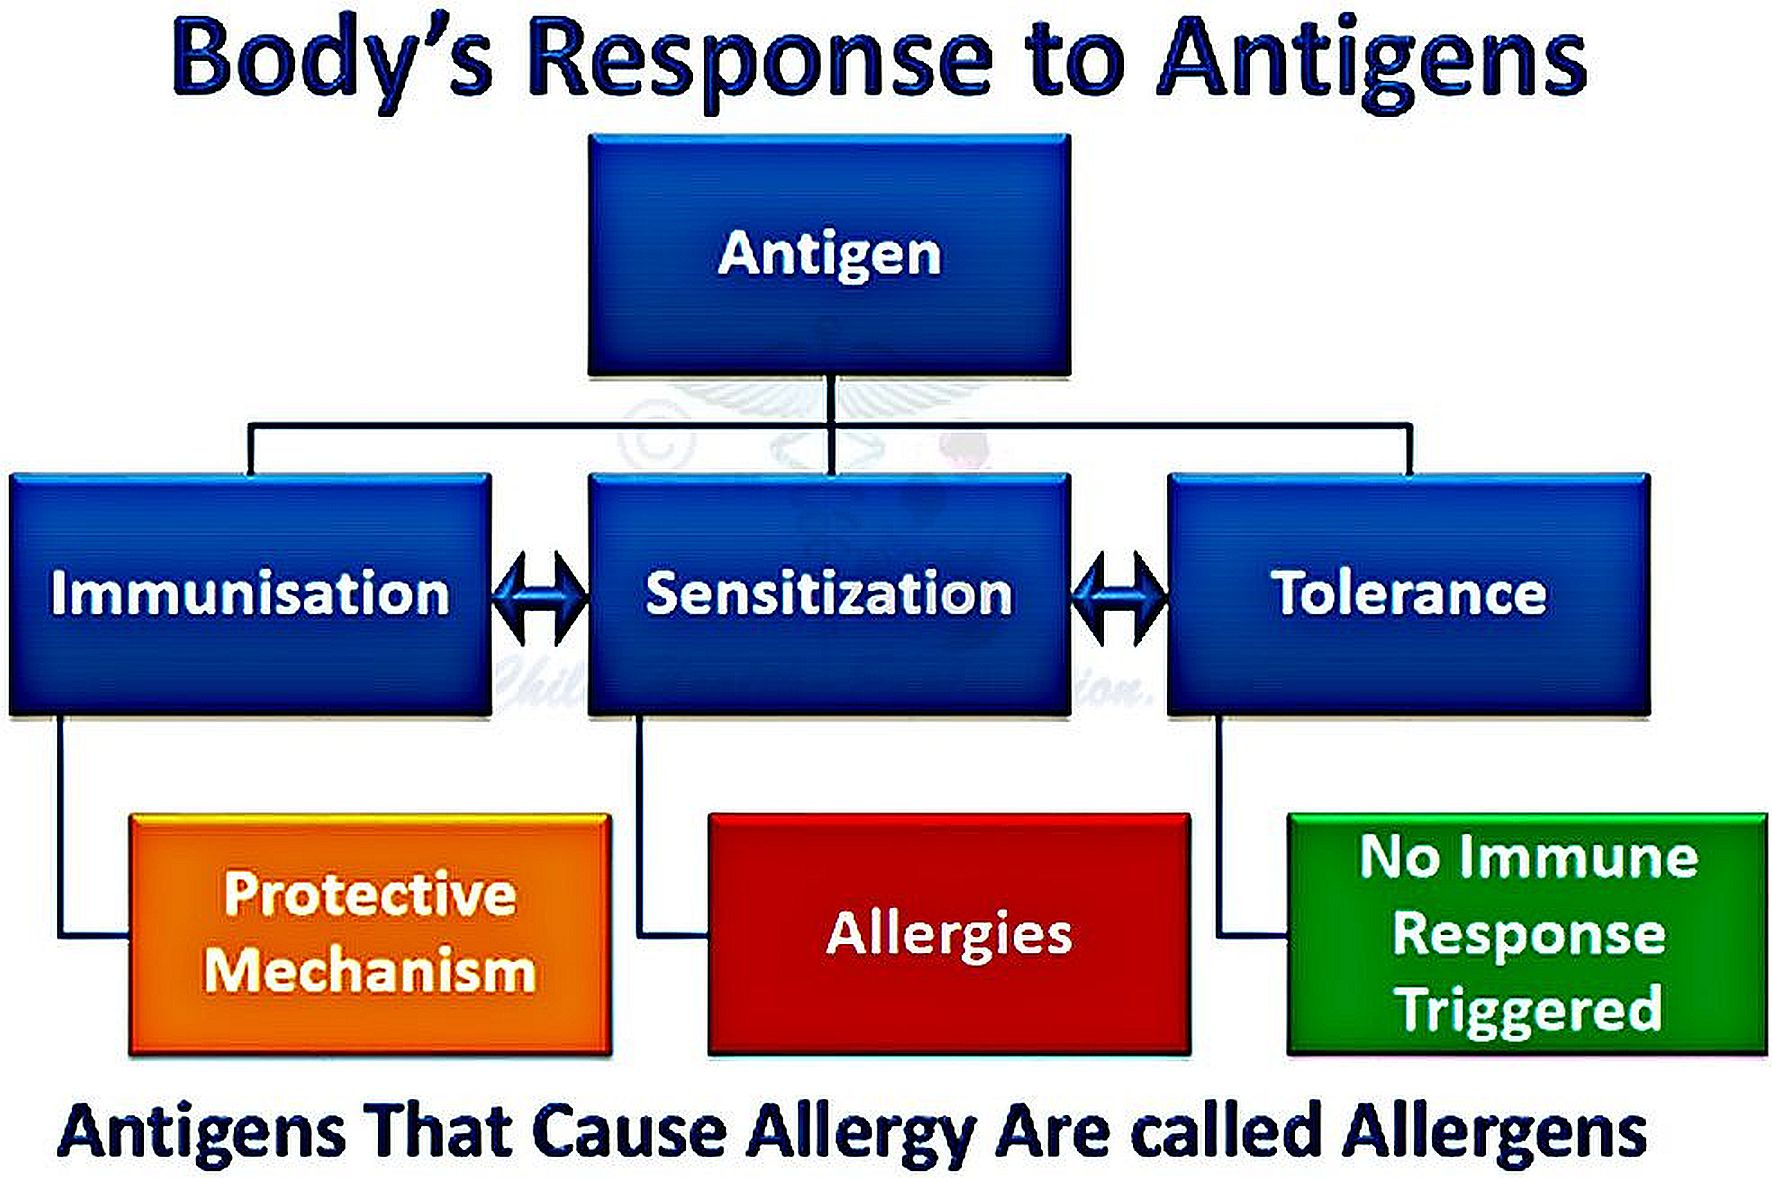 Body's Response to Antigens